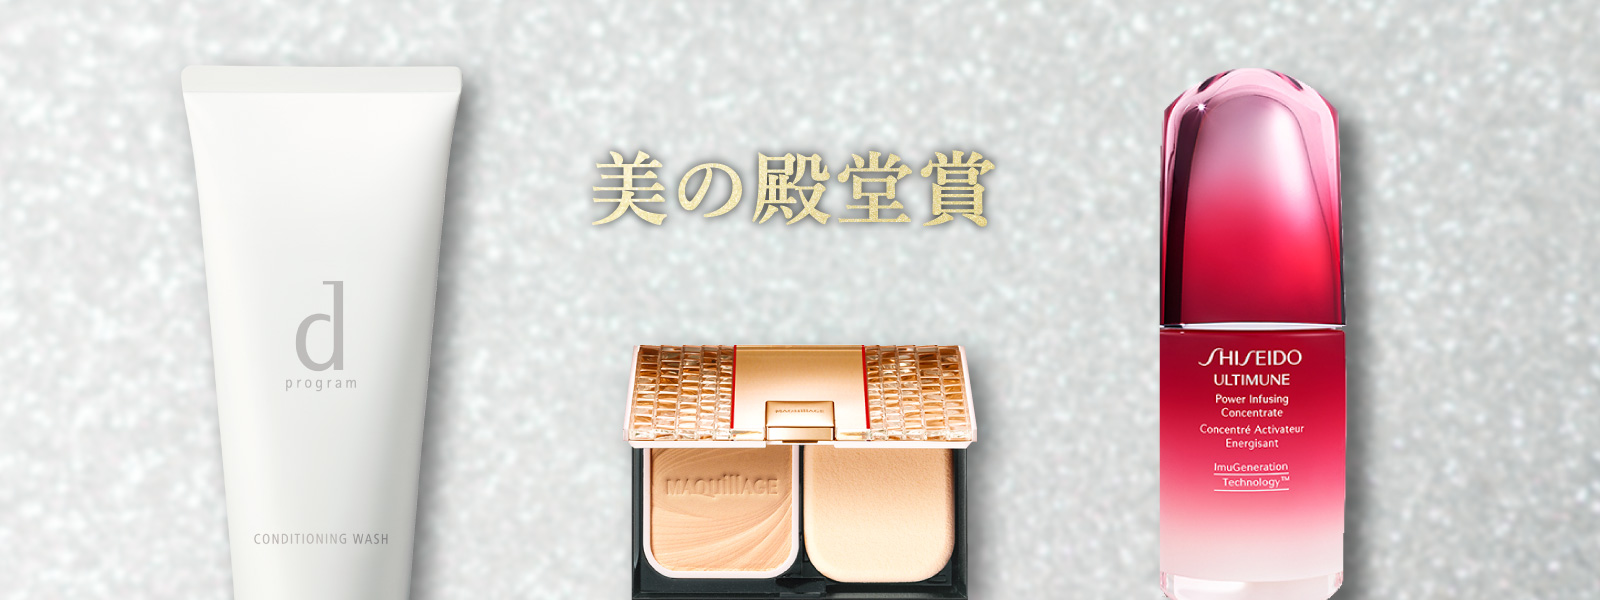 BEAUTY HALL OF FAME 美の殿堂賞